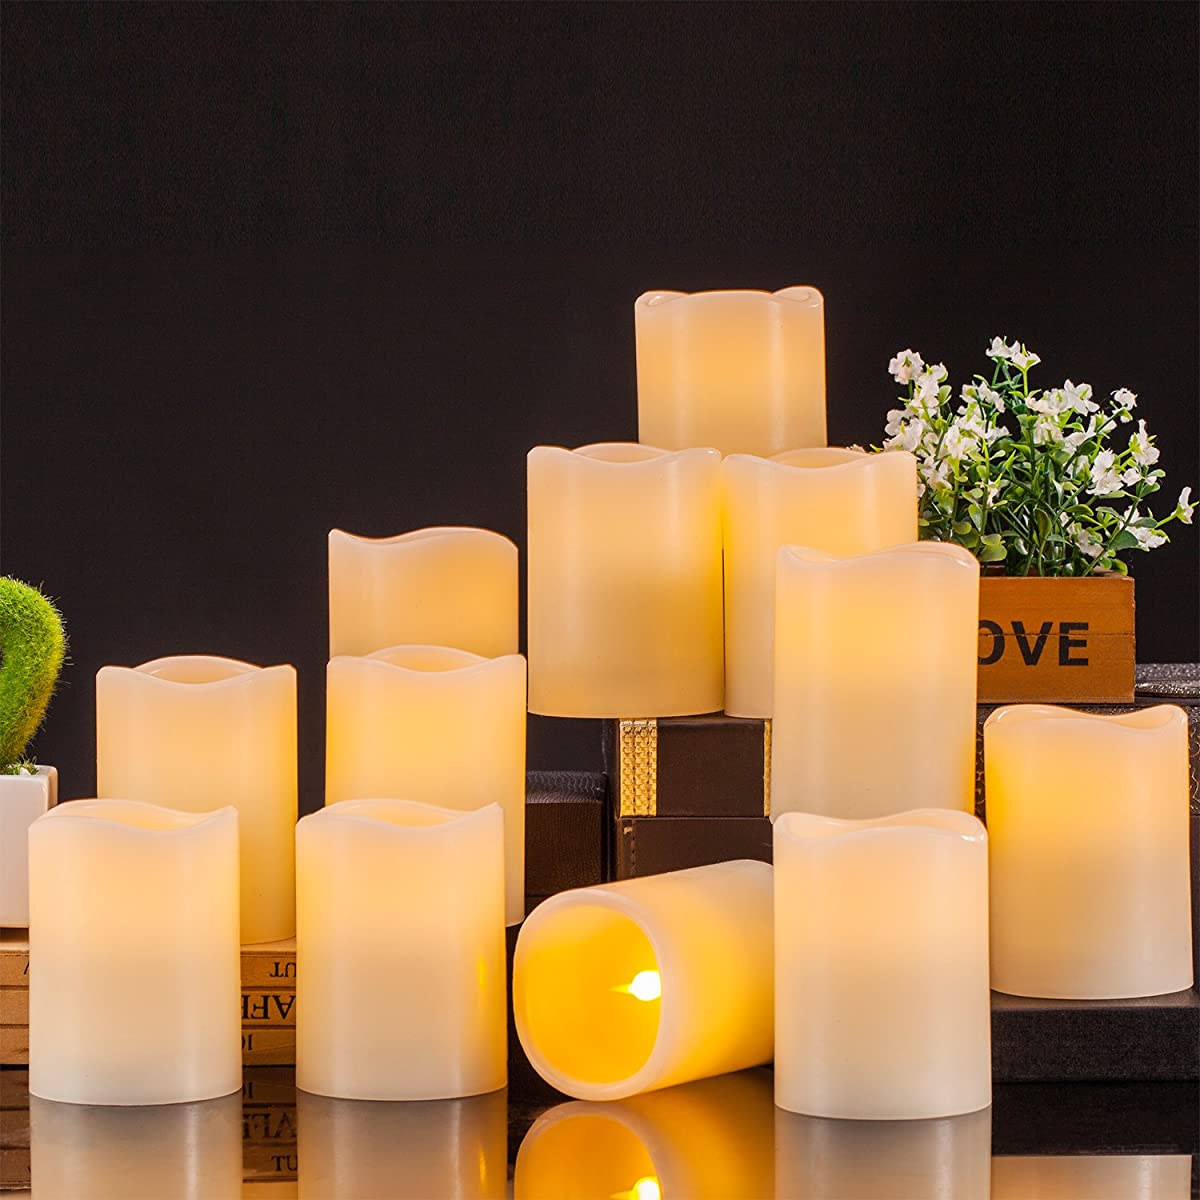 """Enpornk Flameless Candles Battery Operated LED Pillar Real Wax Flickering Electric Unscented Candles with Remote Control Cycling 24 Hours Timer, 3""""x4"""" Set of 12"""